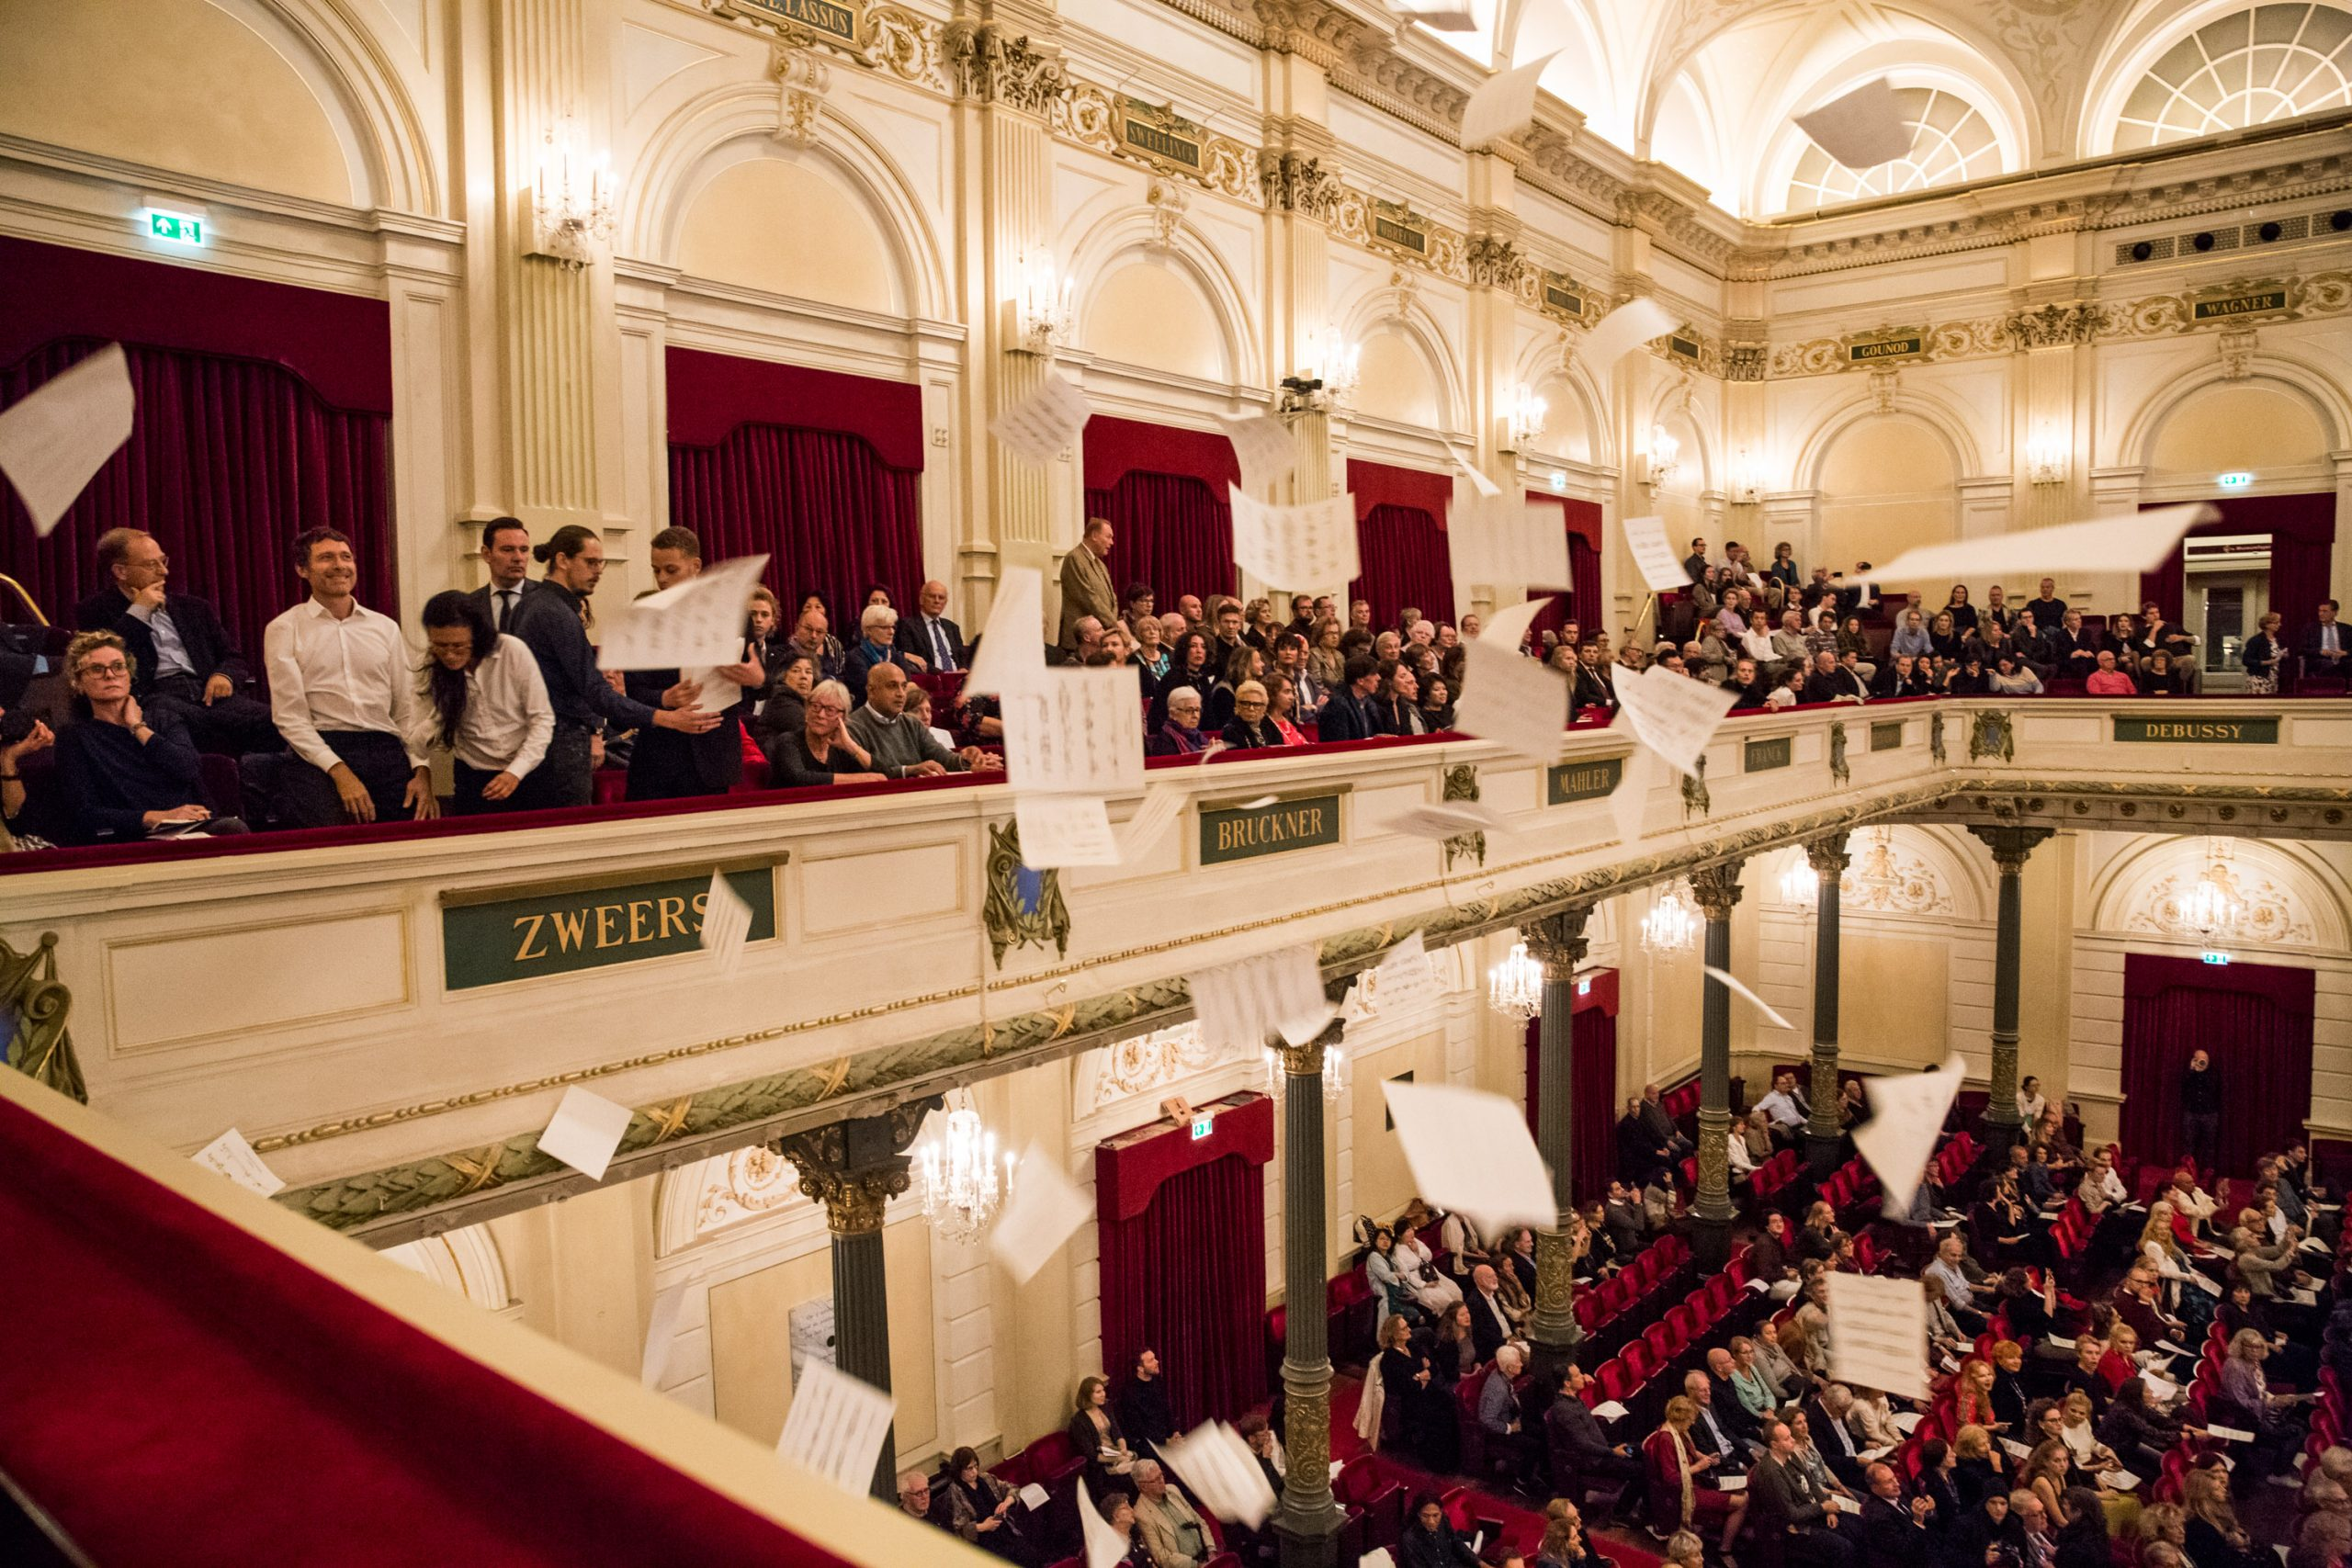 A protest at the Concertgebouw by Fossil Free Culture Netherlands